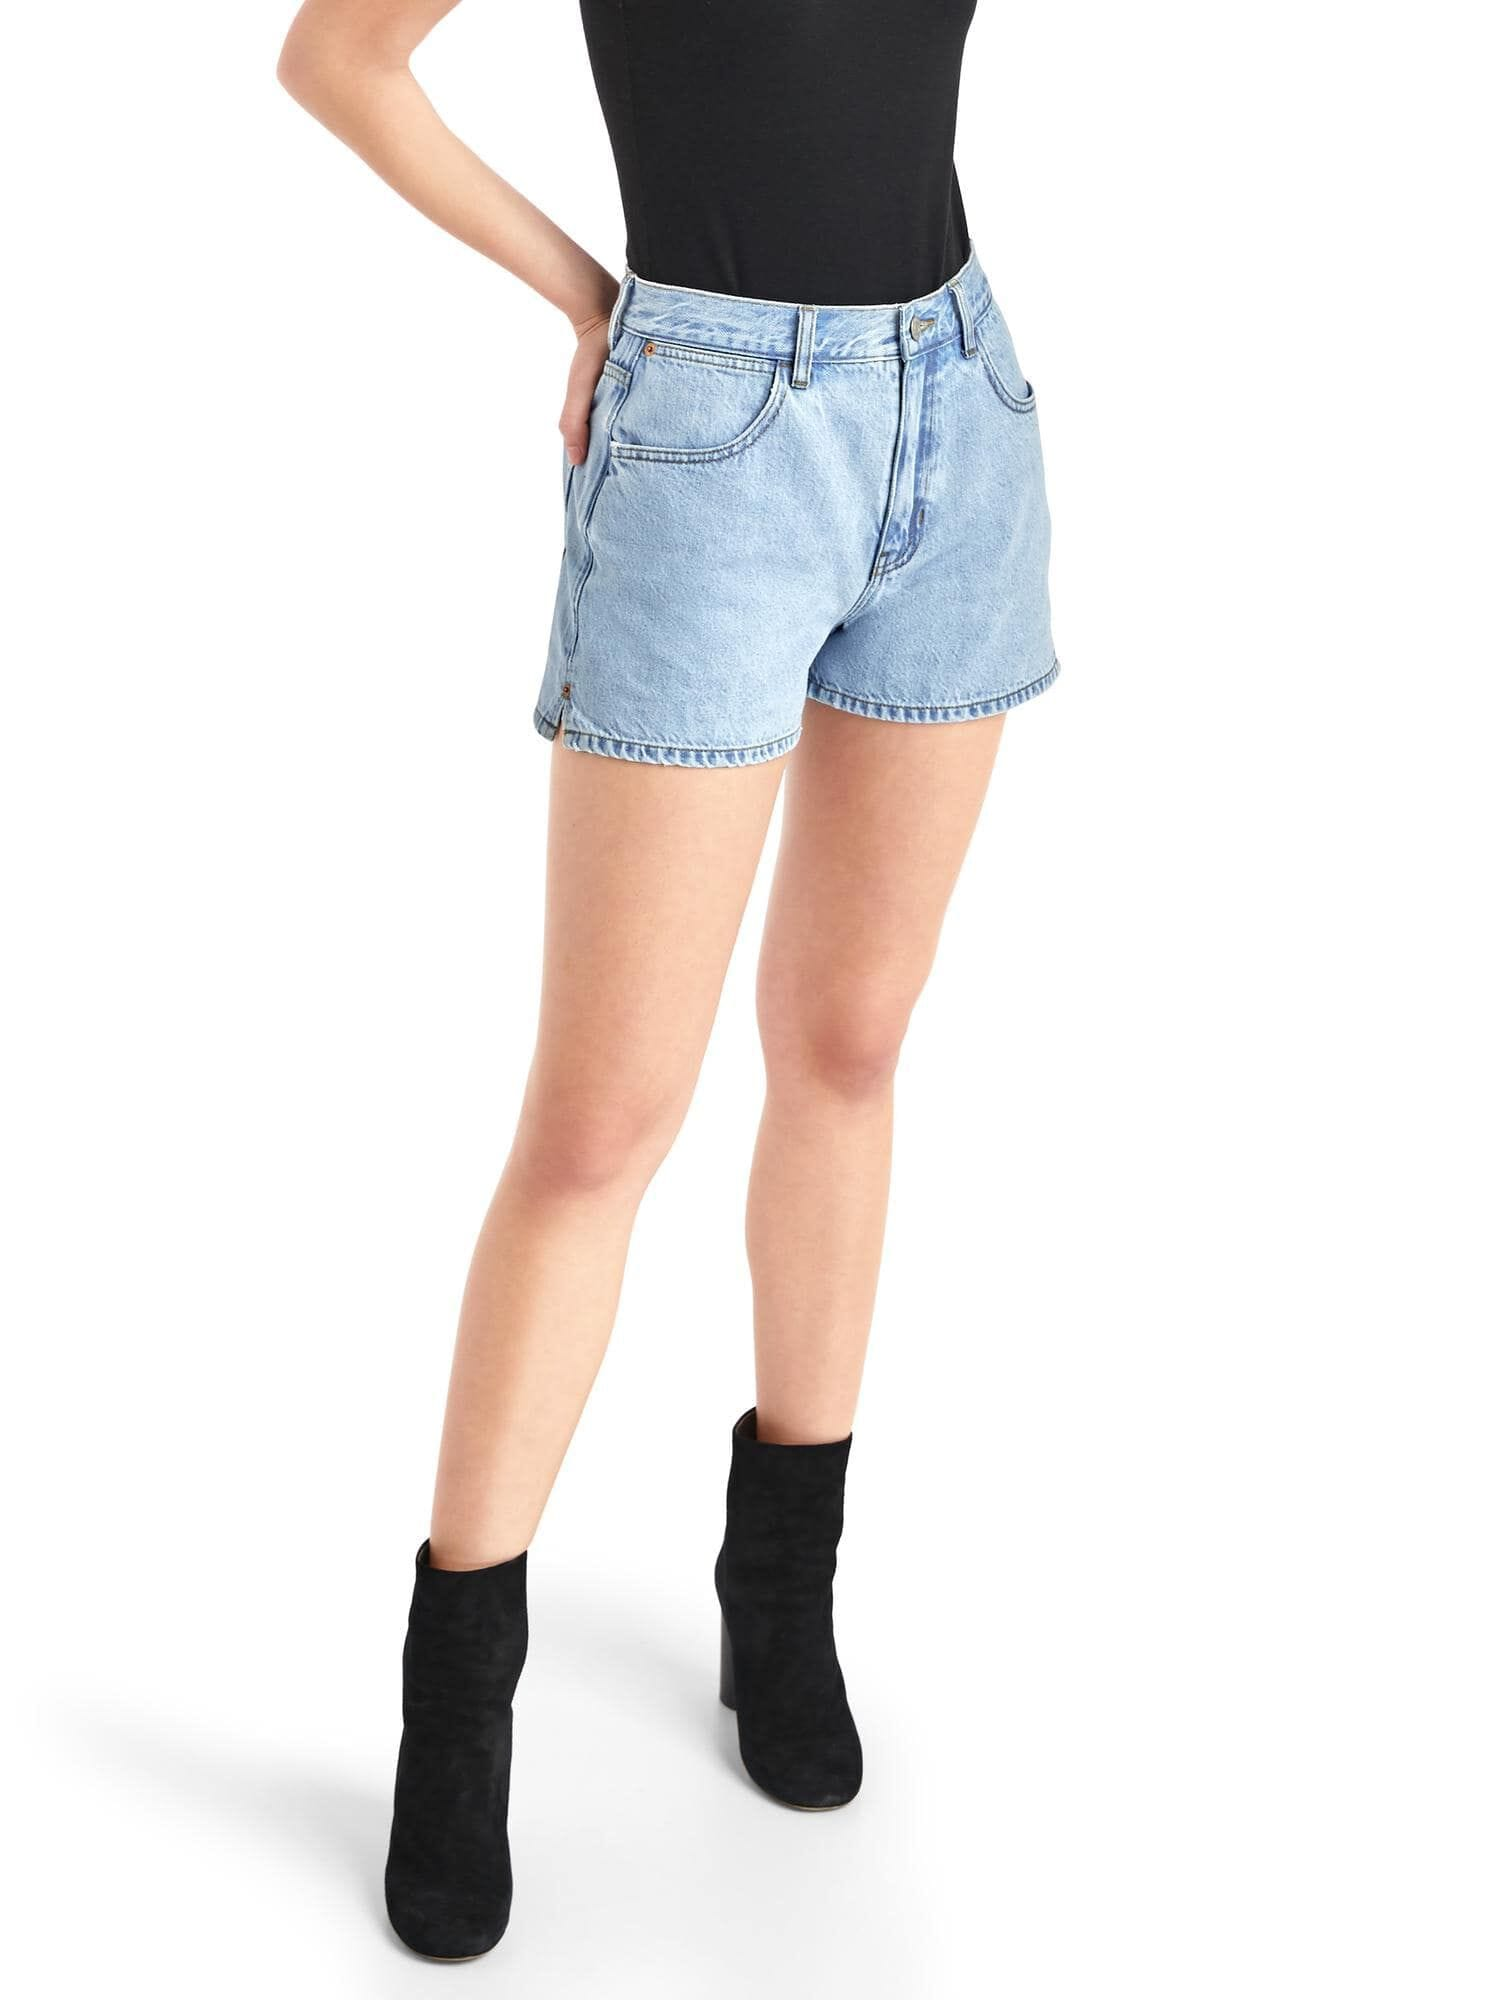 97a4ccec278 The archive re-issue classic fit high rise denim shorts